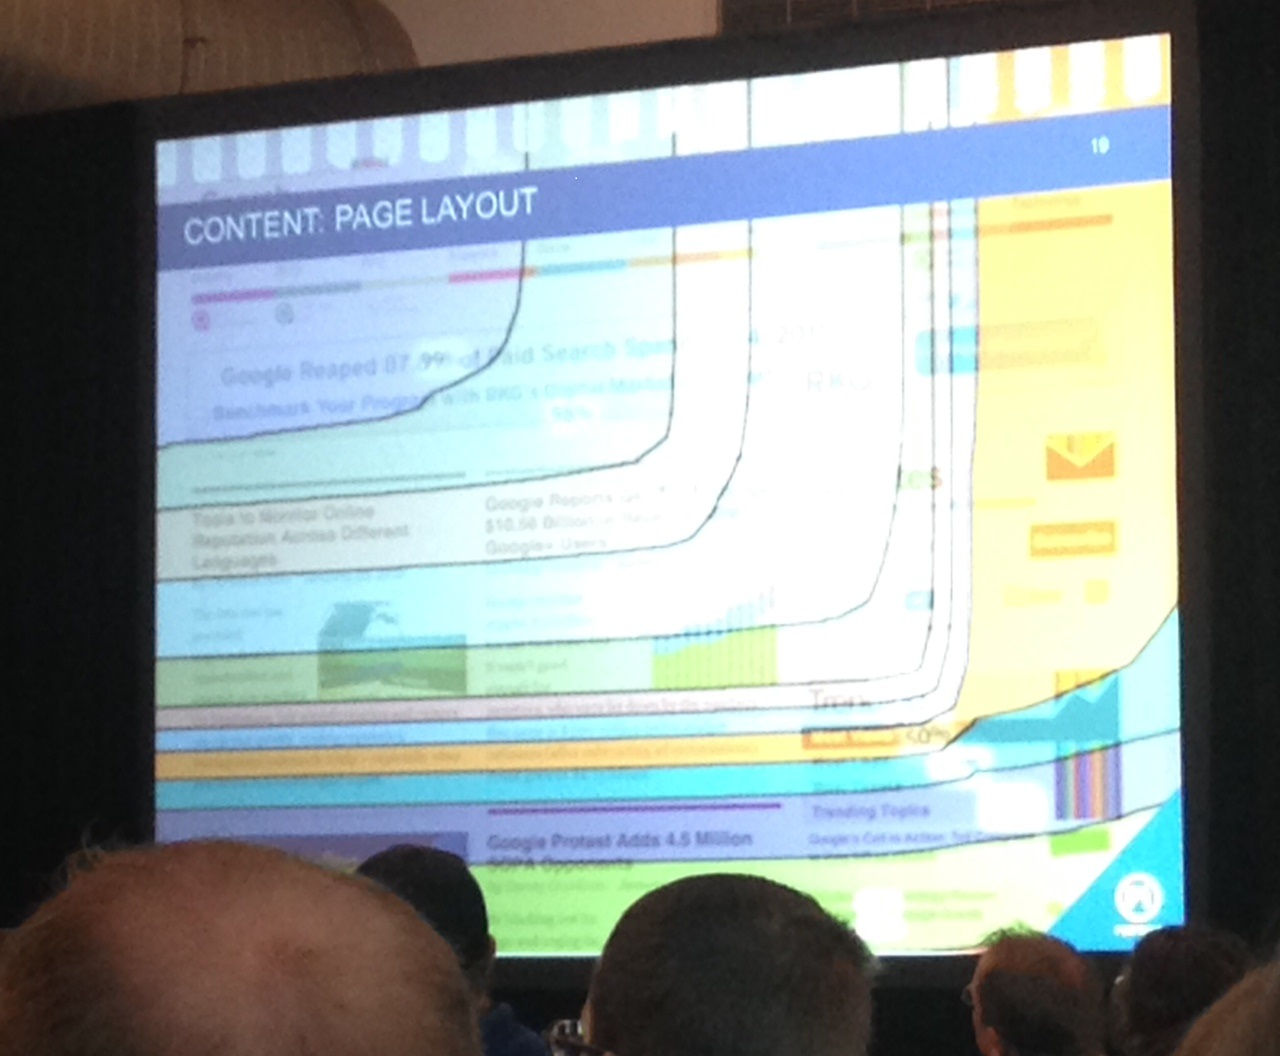 Smx liveblog the periodic table of seo ranking factors content page layout seo factors gamestrikefo Images